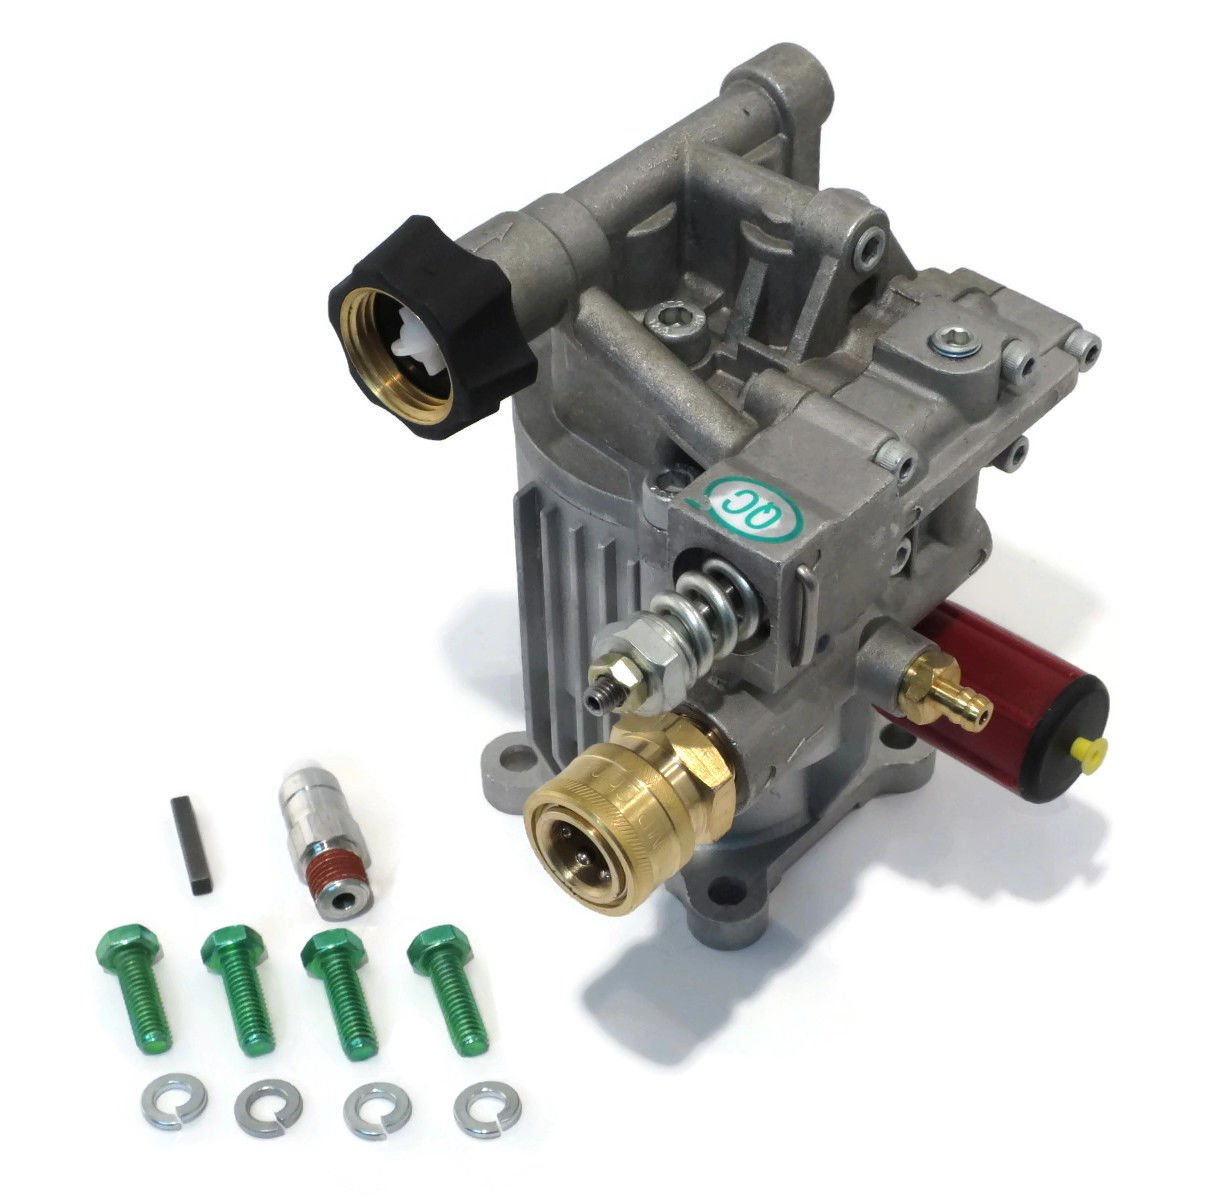 New Honda EXCELL XR2500 XR2600 XC2600 EXHA2425 XR2625 Pressure Washer Pump KIT by The ROP Shop by Himore